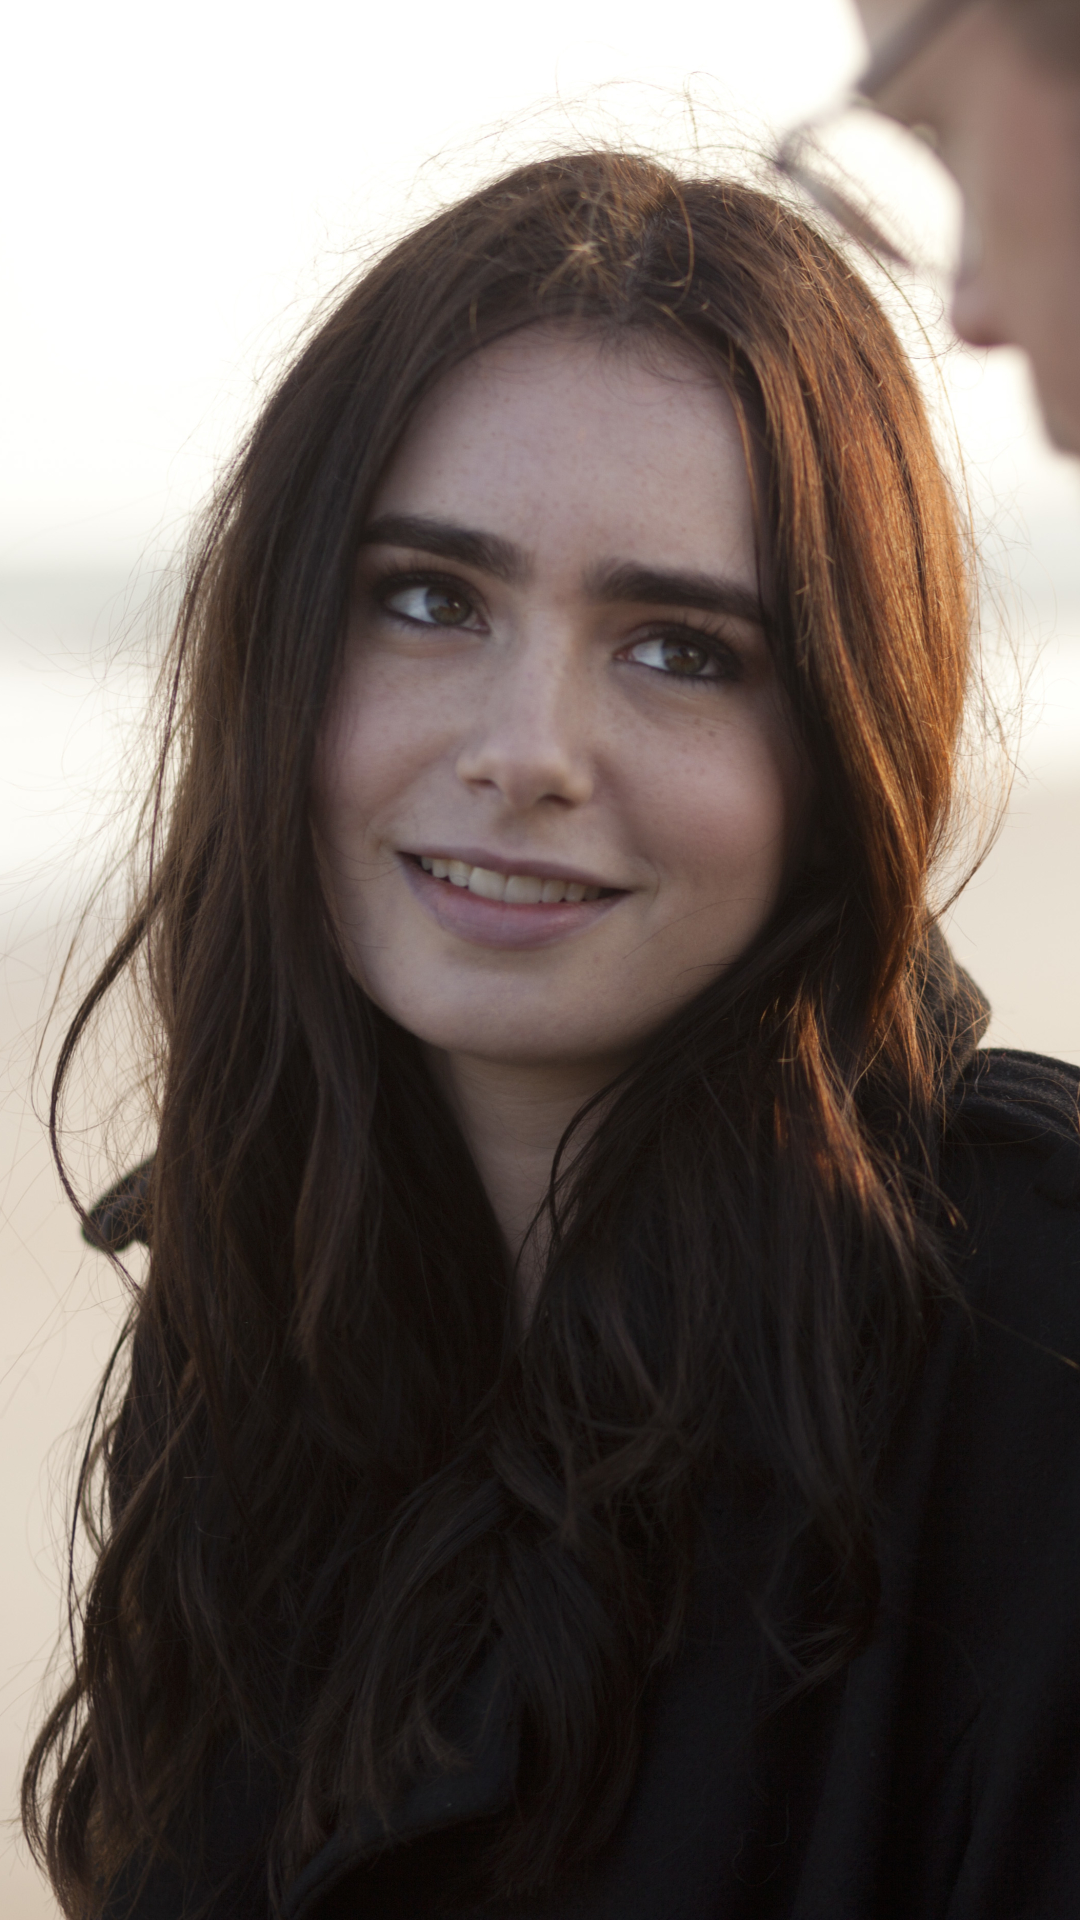 celebrity/lily collins (1080x1920) wallpaper id: 630696 - mobile abyss